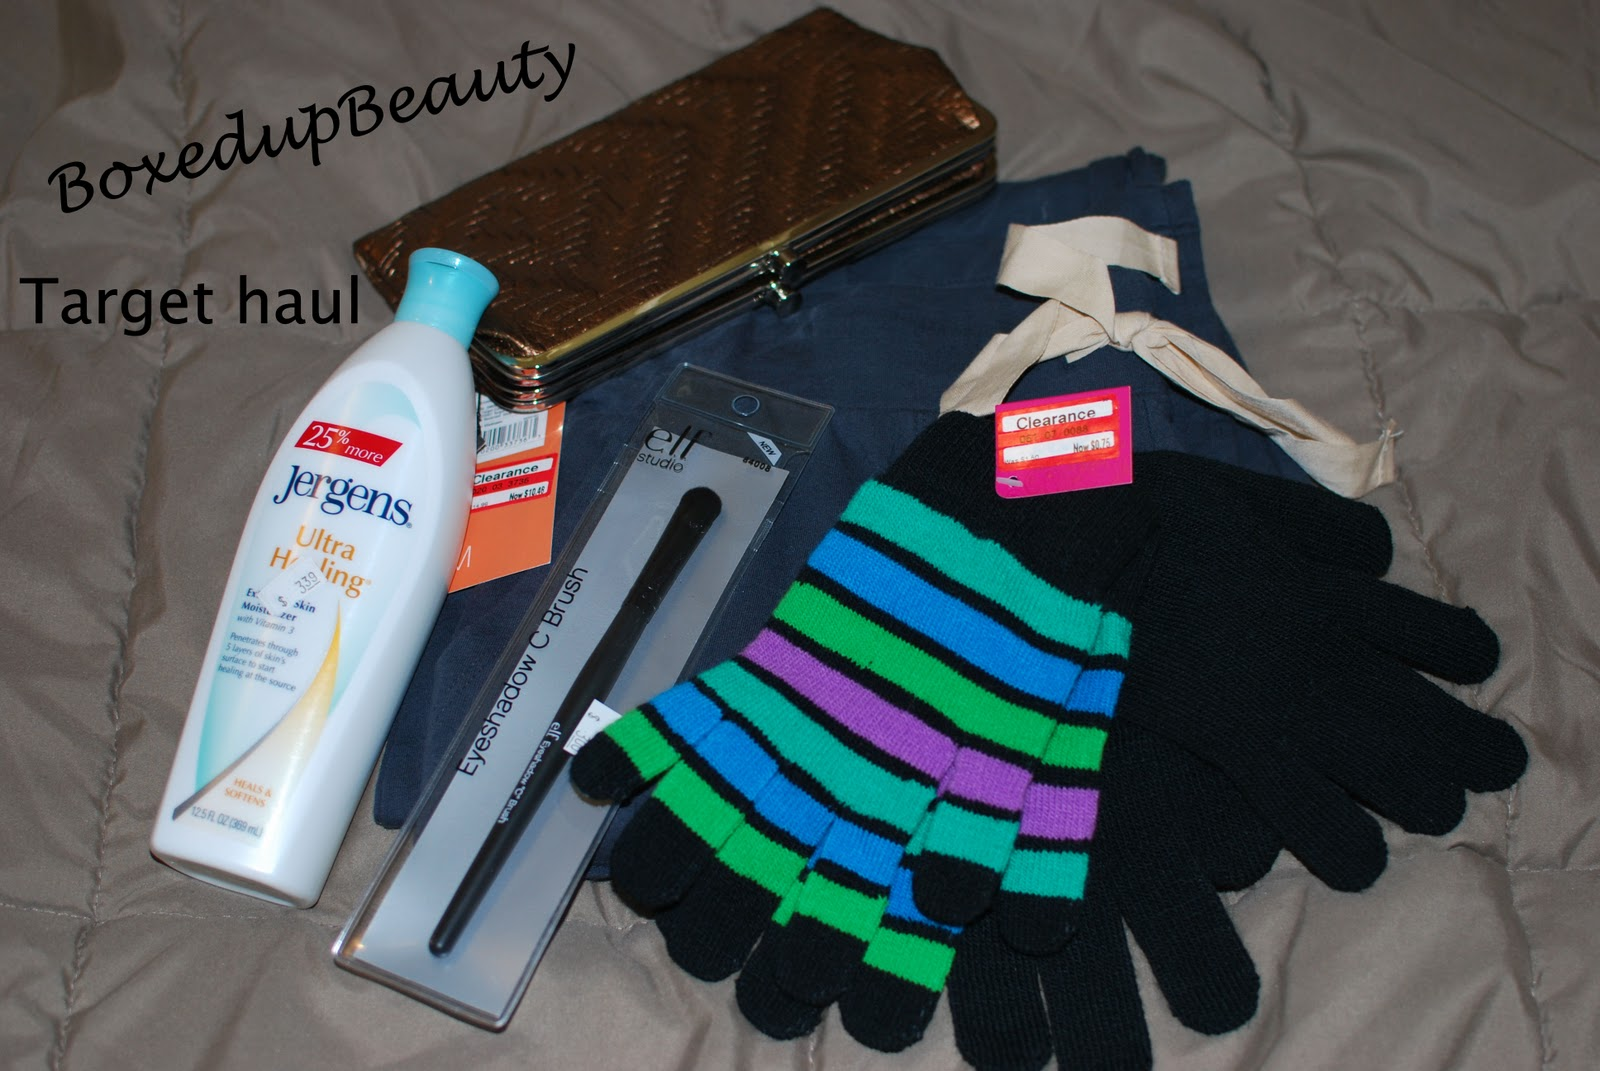 Black gloves at target -  Black Rainbow And Black Gloves Target Brand 37 For The Pair Gilligan O Malley French Terry Sleep Pant In Banker S Gray 10 48